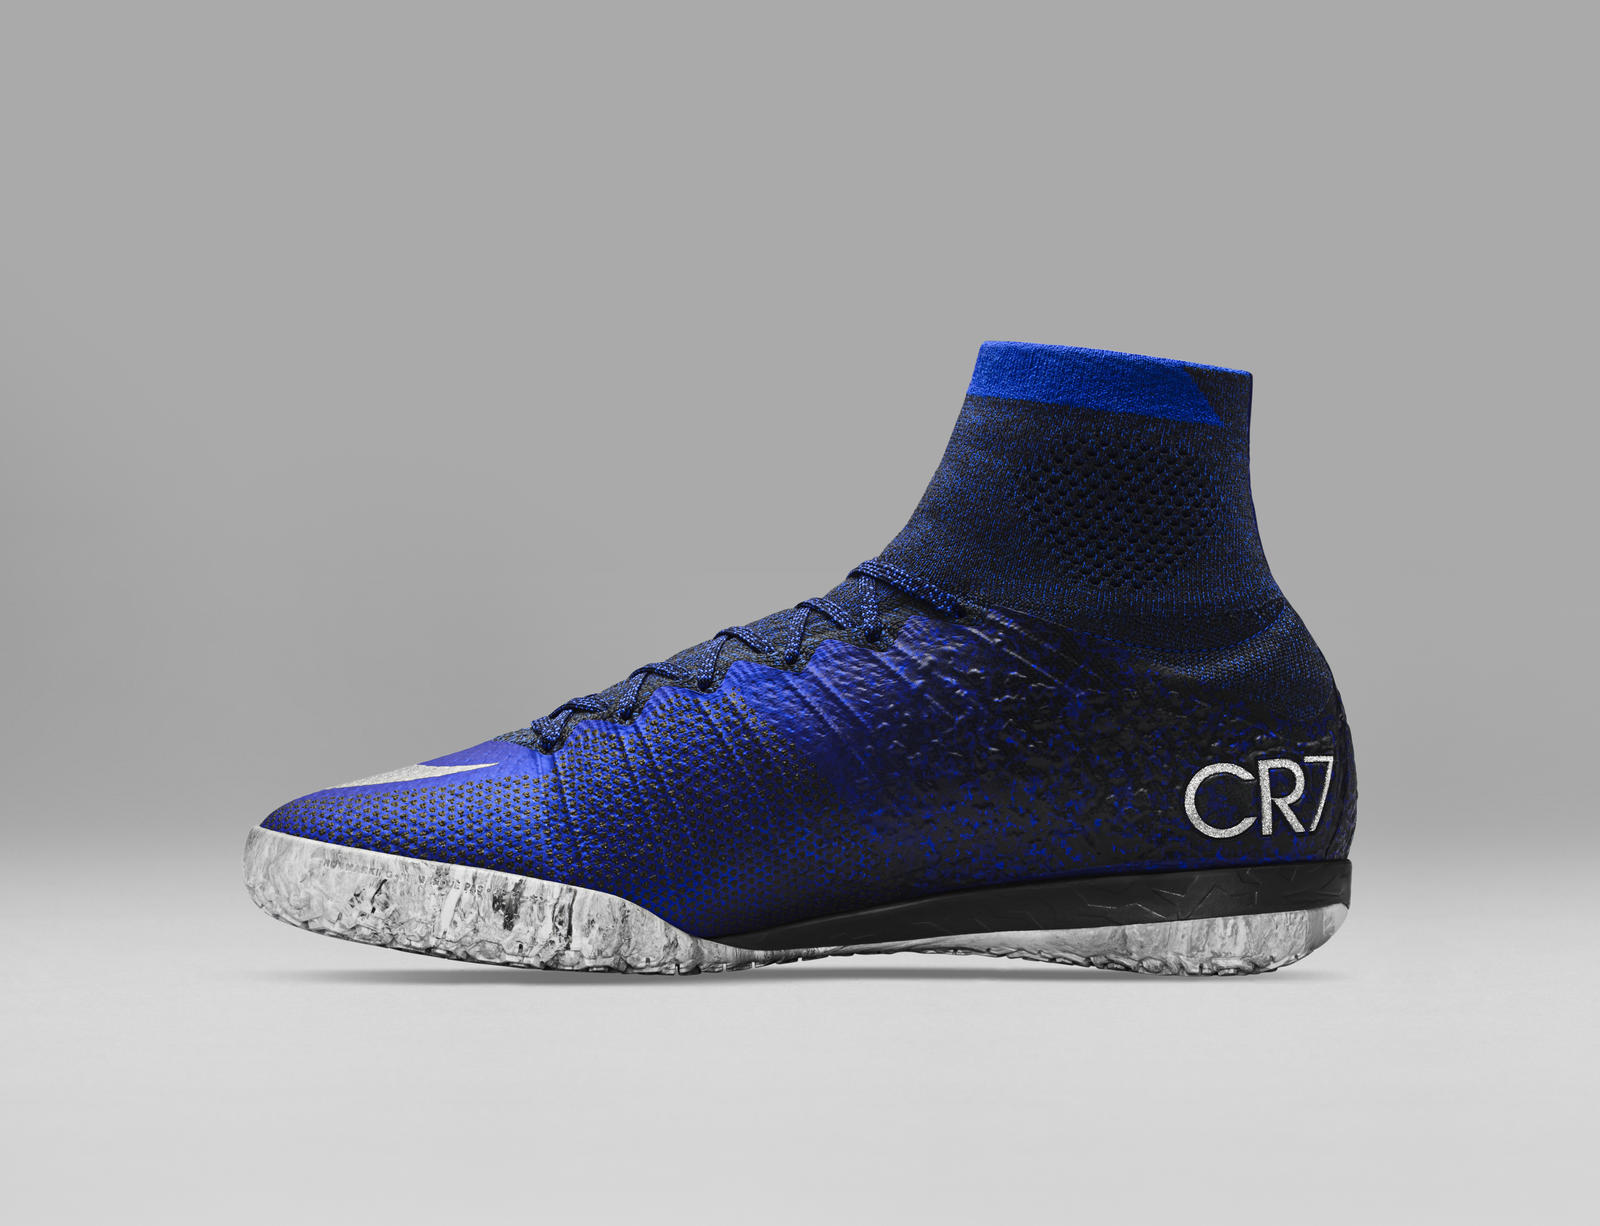 39d81d55f1 Mobile Gallery Image ... Nike Mercurial Superfly CR7 Natural Diamond Play  Test - YouT Mercurial Superfly CR7 Chapter 1 2 From ...